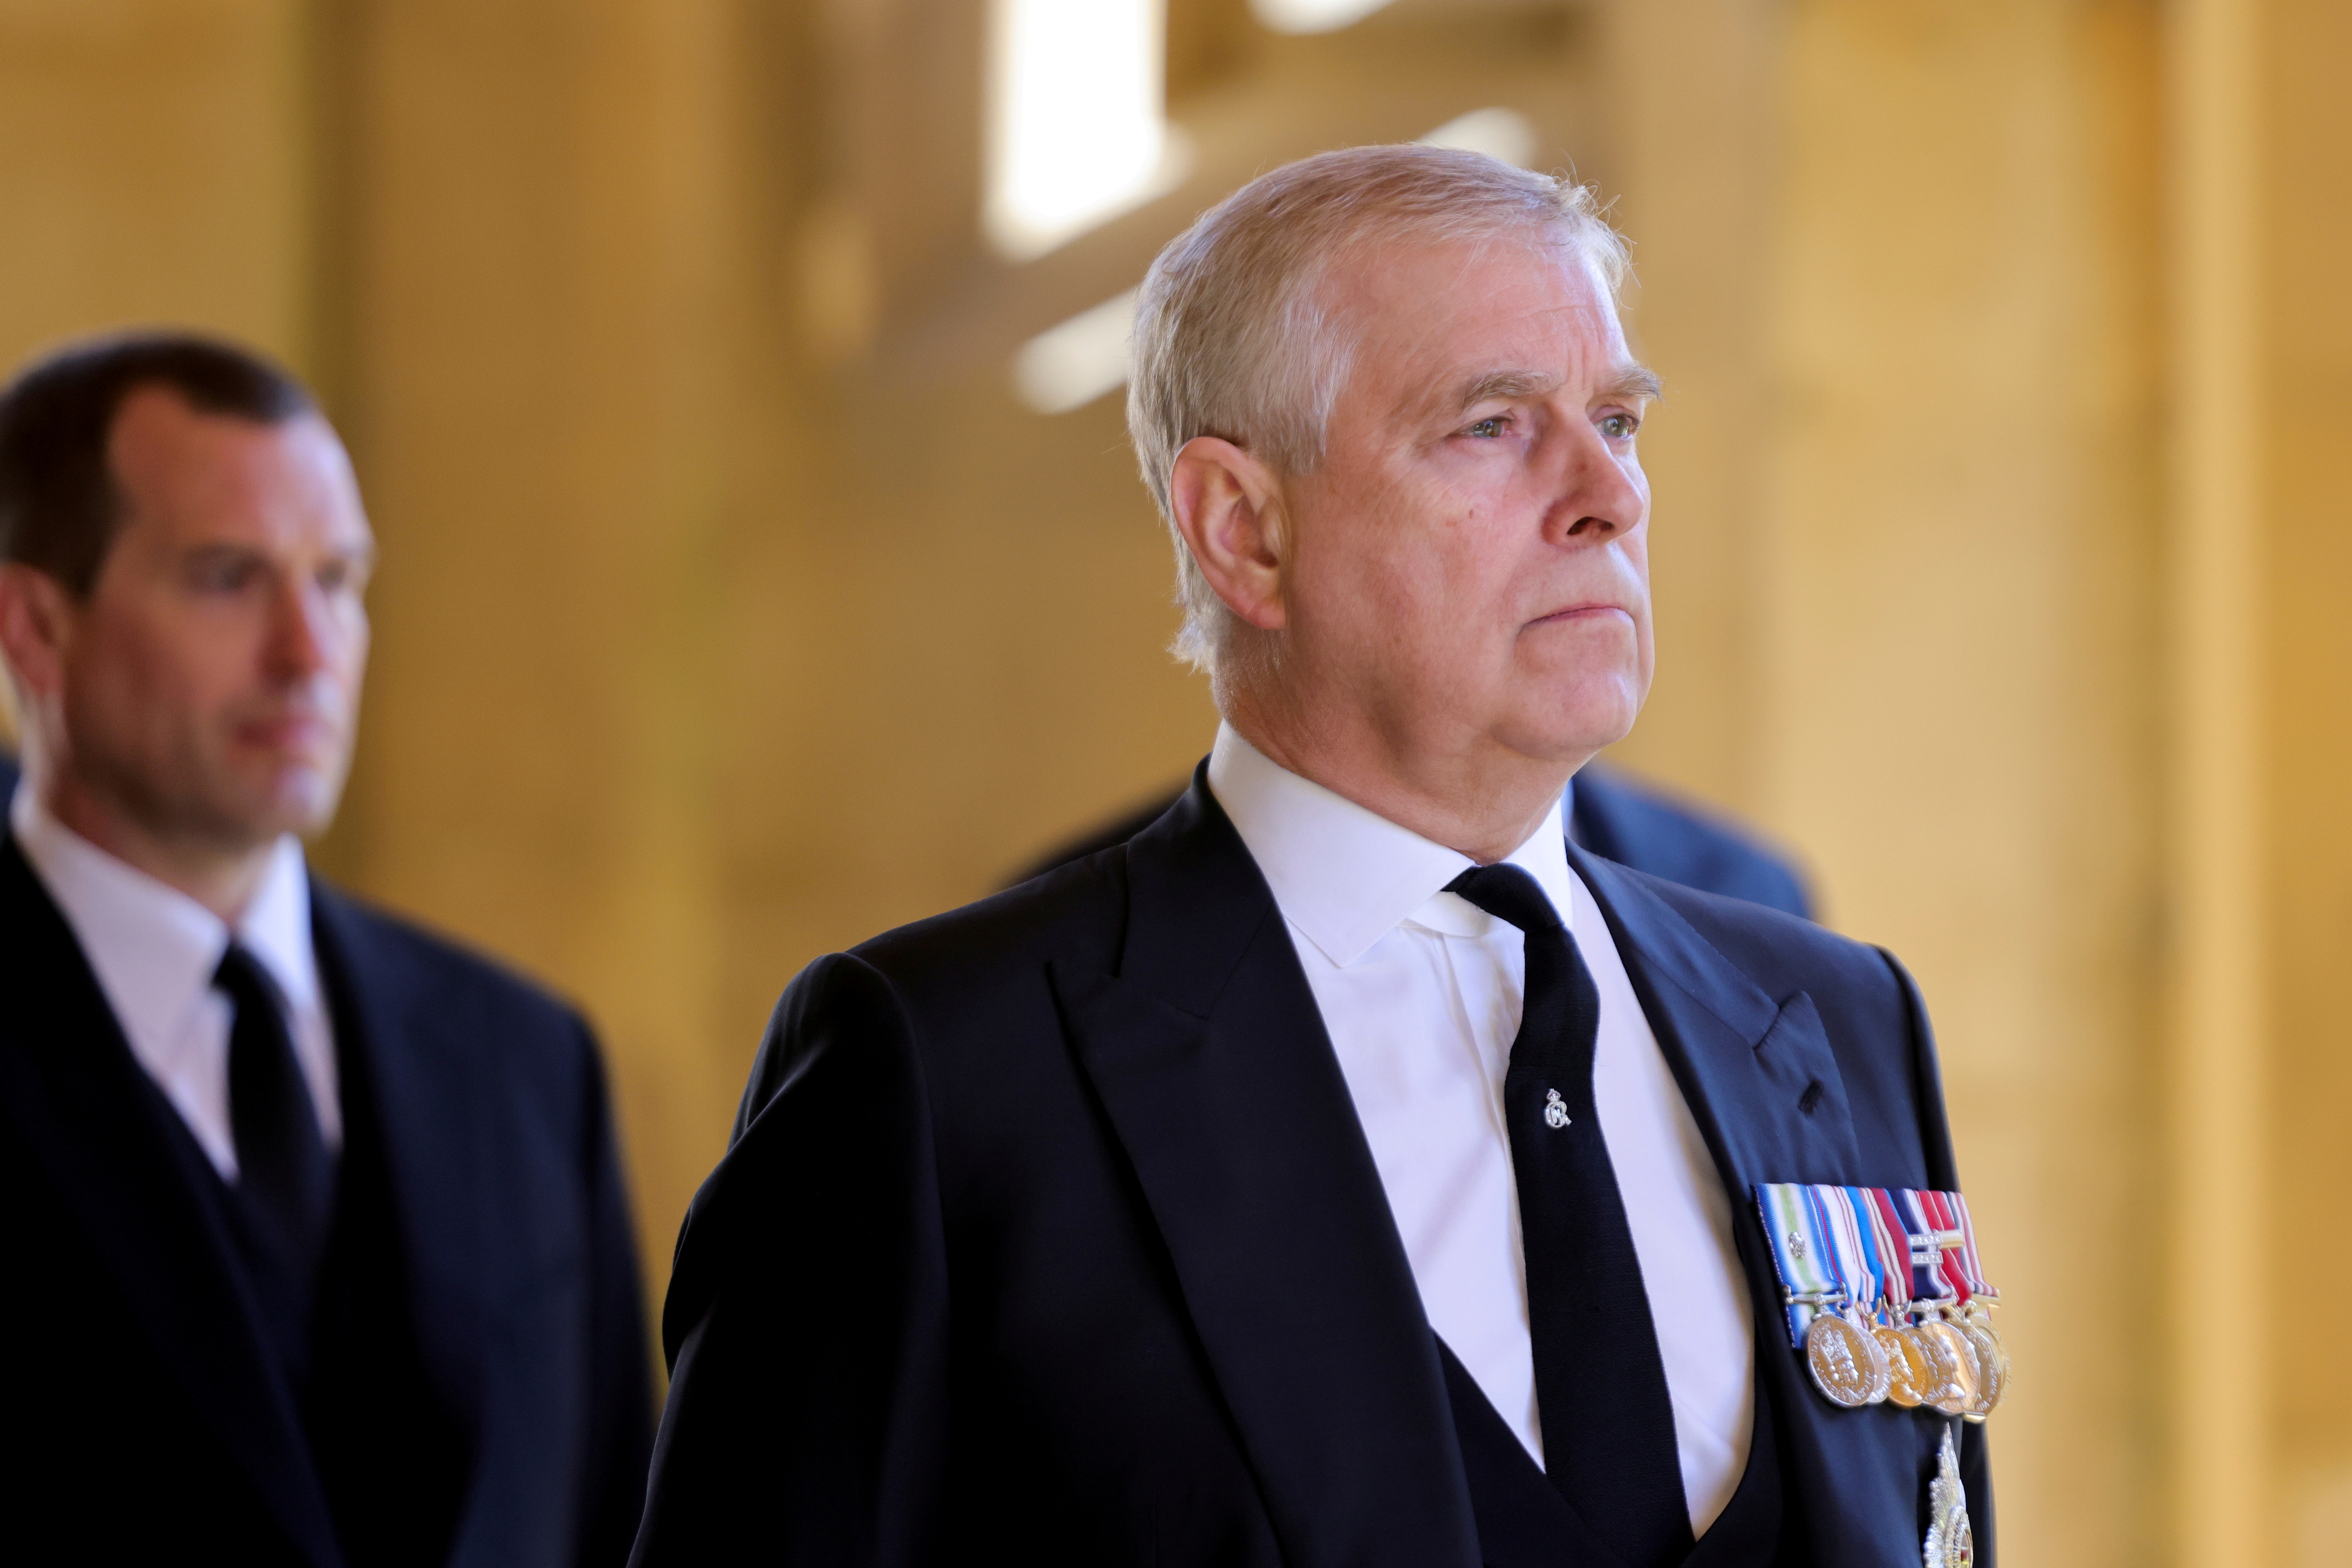 Britain's Britain's Prince Andrew, Duke of York, looks on during the funeral of Britain's Prince Philip, husband of Queen Elizabeth, who died at the age of 99, on the grounds of Windsor Castle in Windsor, Britain, April 17, 2021. Chris Jackson/Pool via REUTERS/File Photo